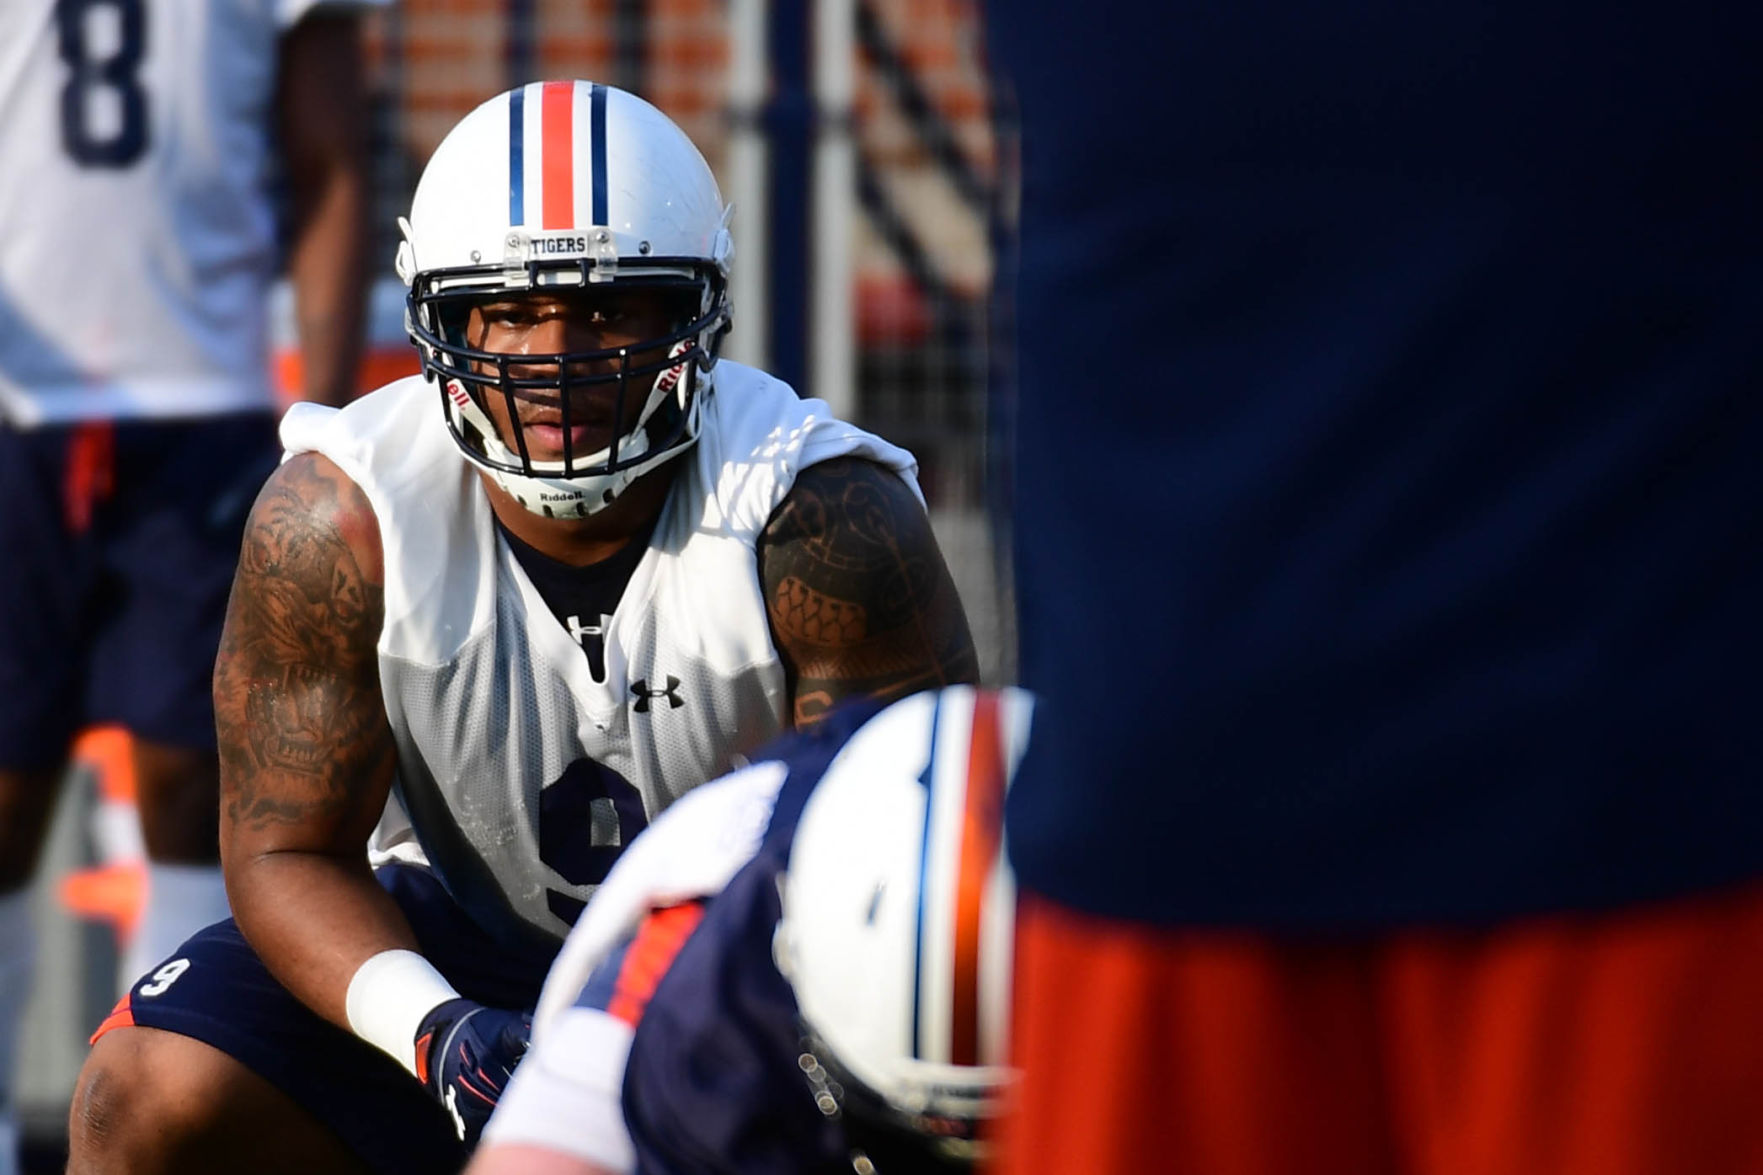 Malzahn: Former top recruit Byron Cowart leaves Auburn team